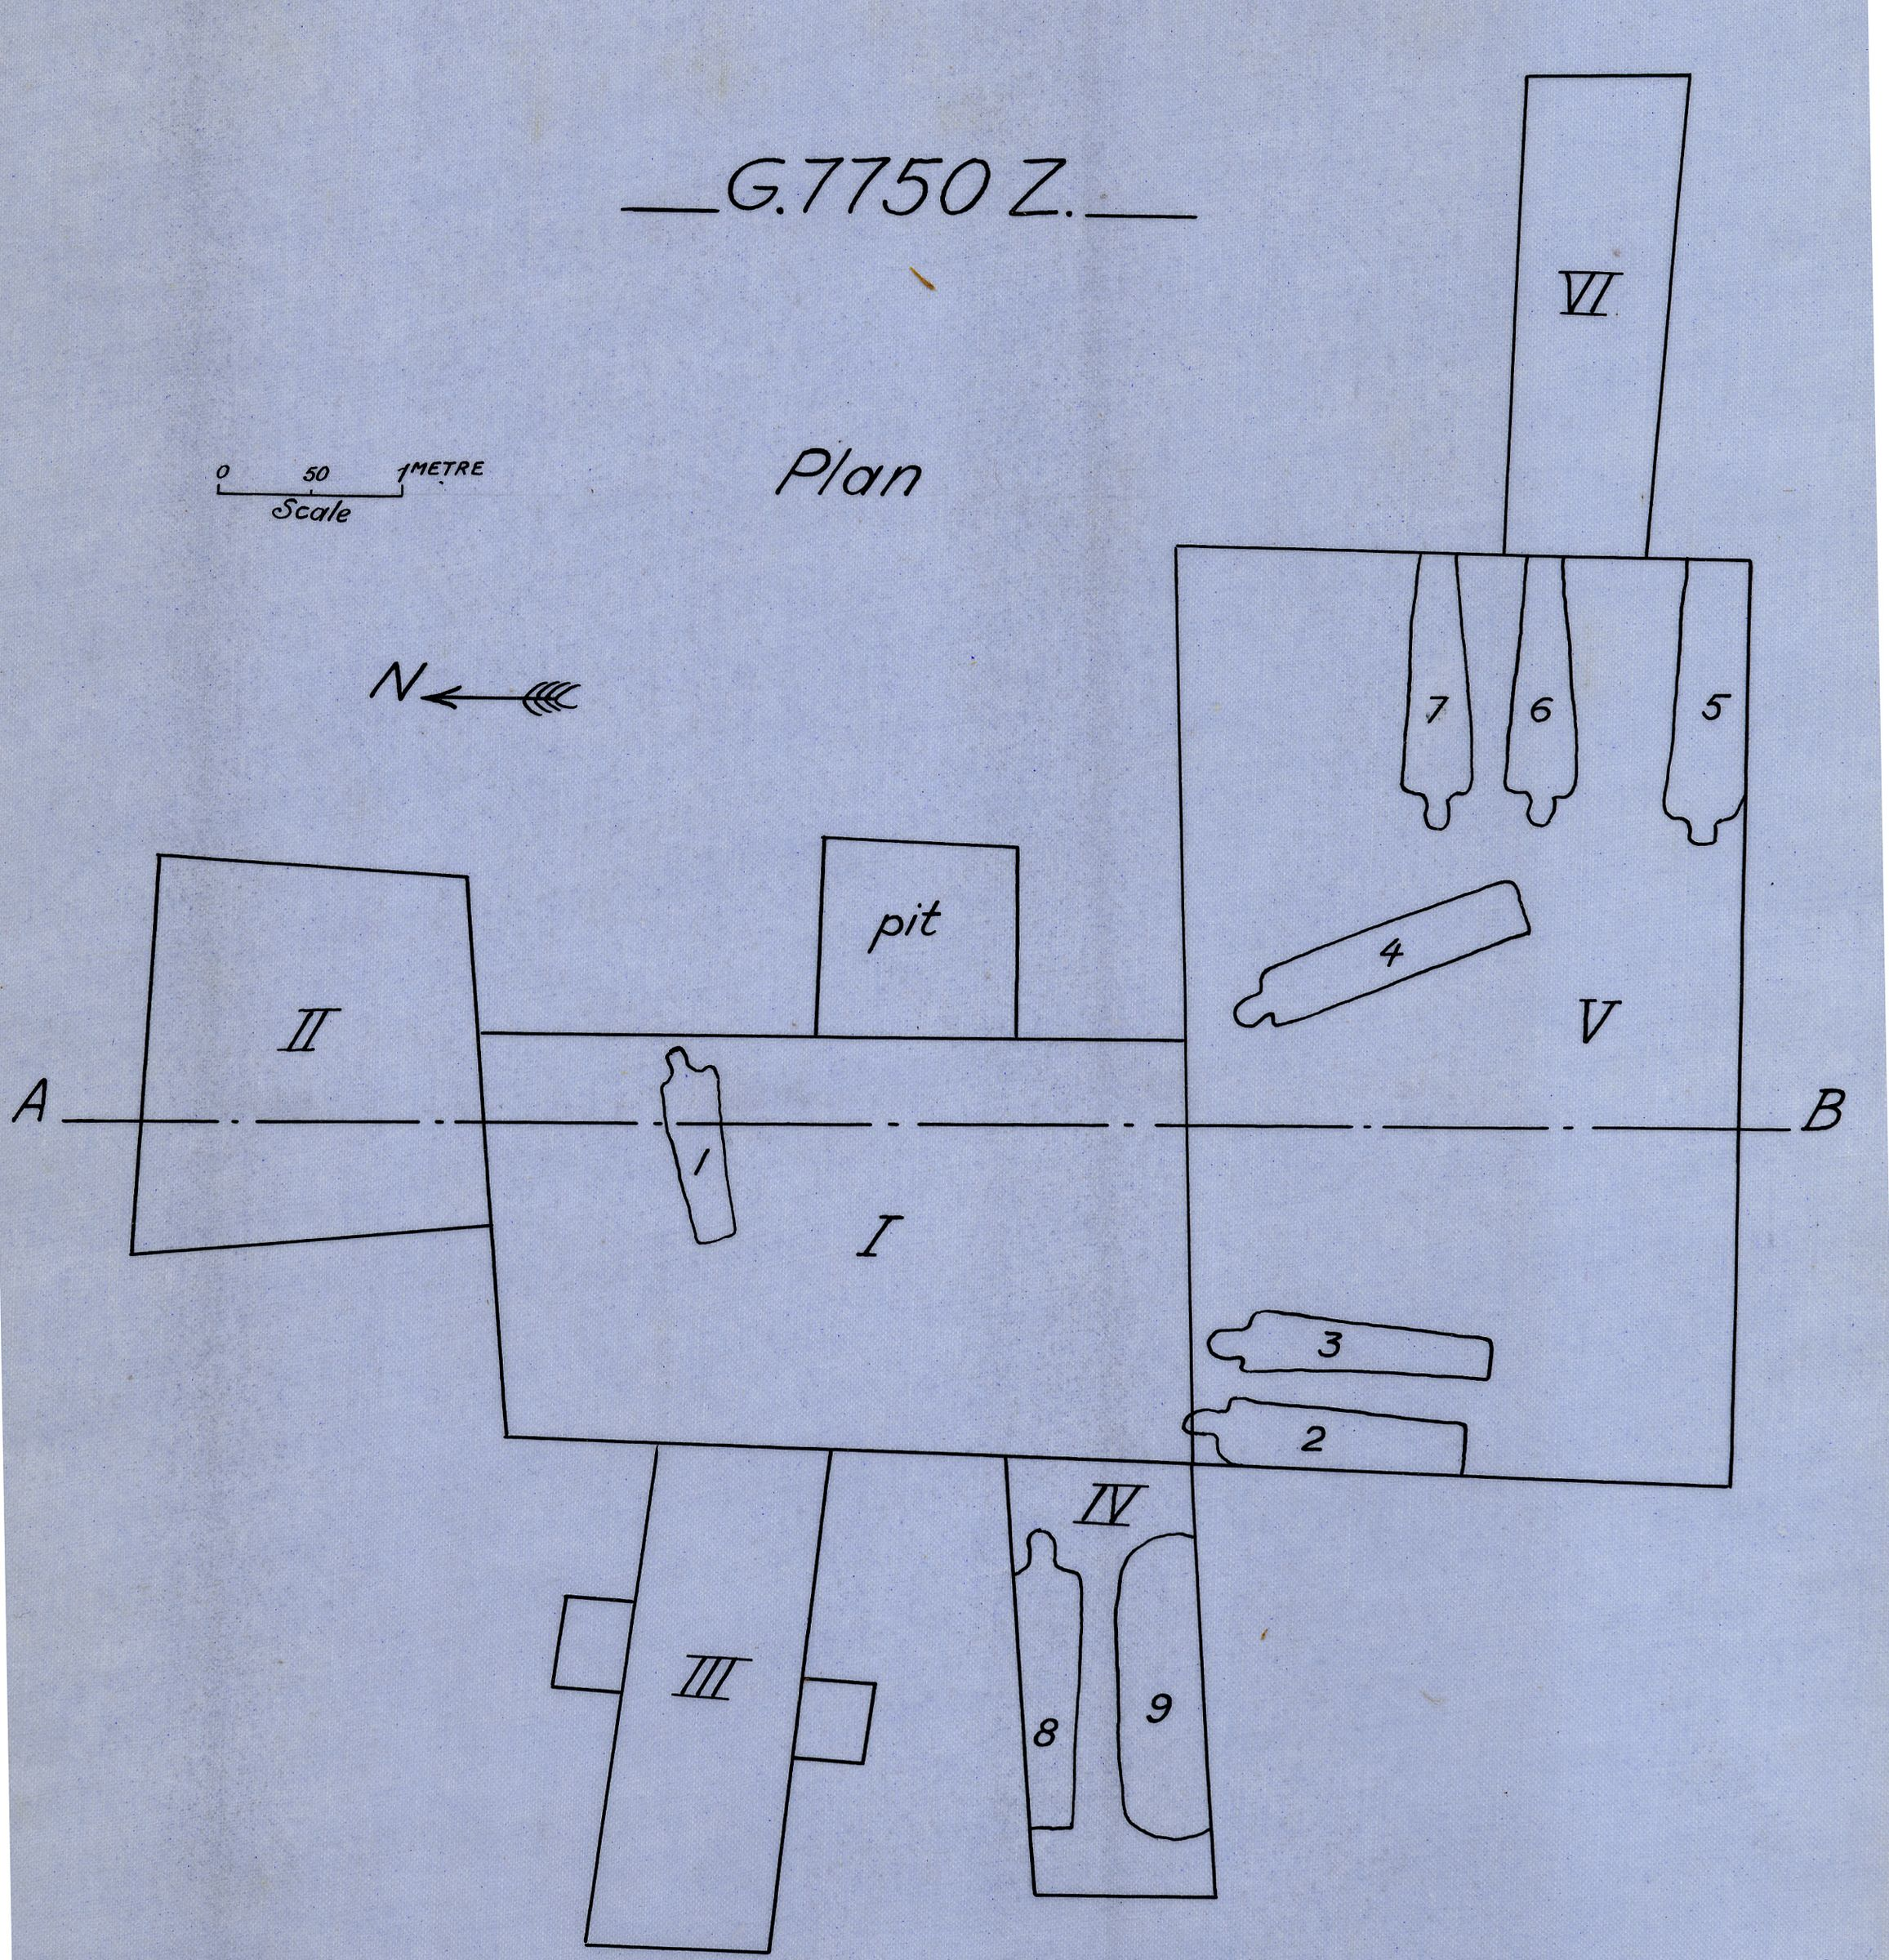 Maps and plans: G 7750, Shaft Z